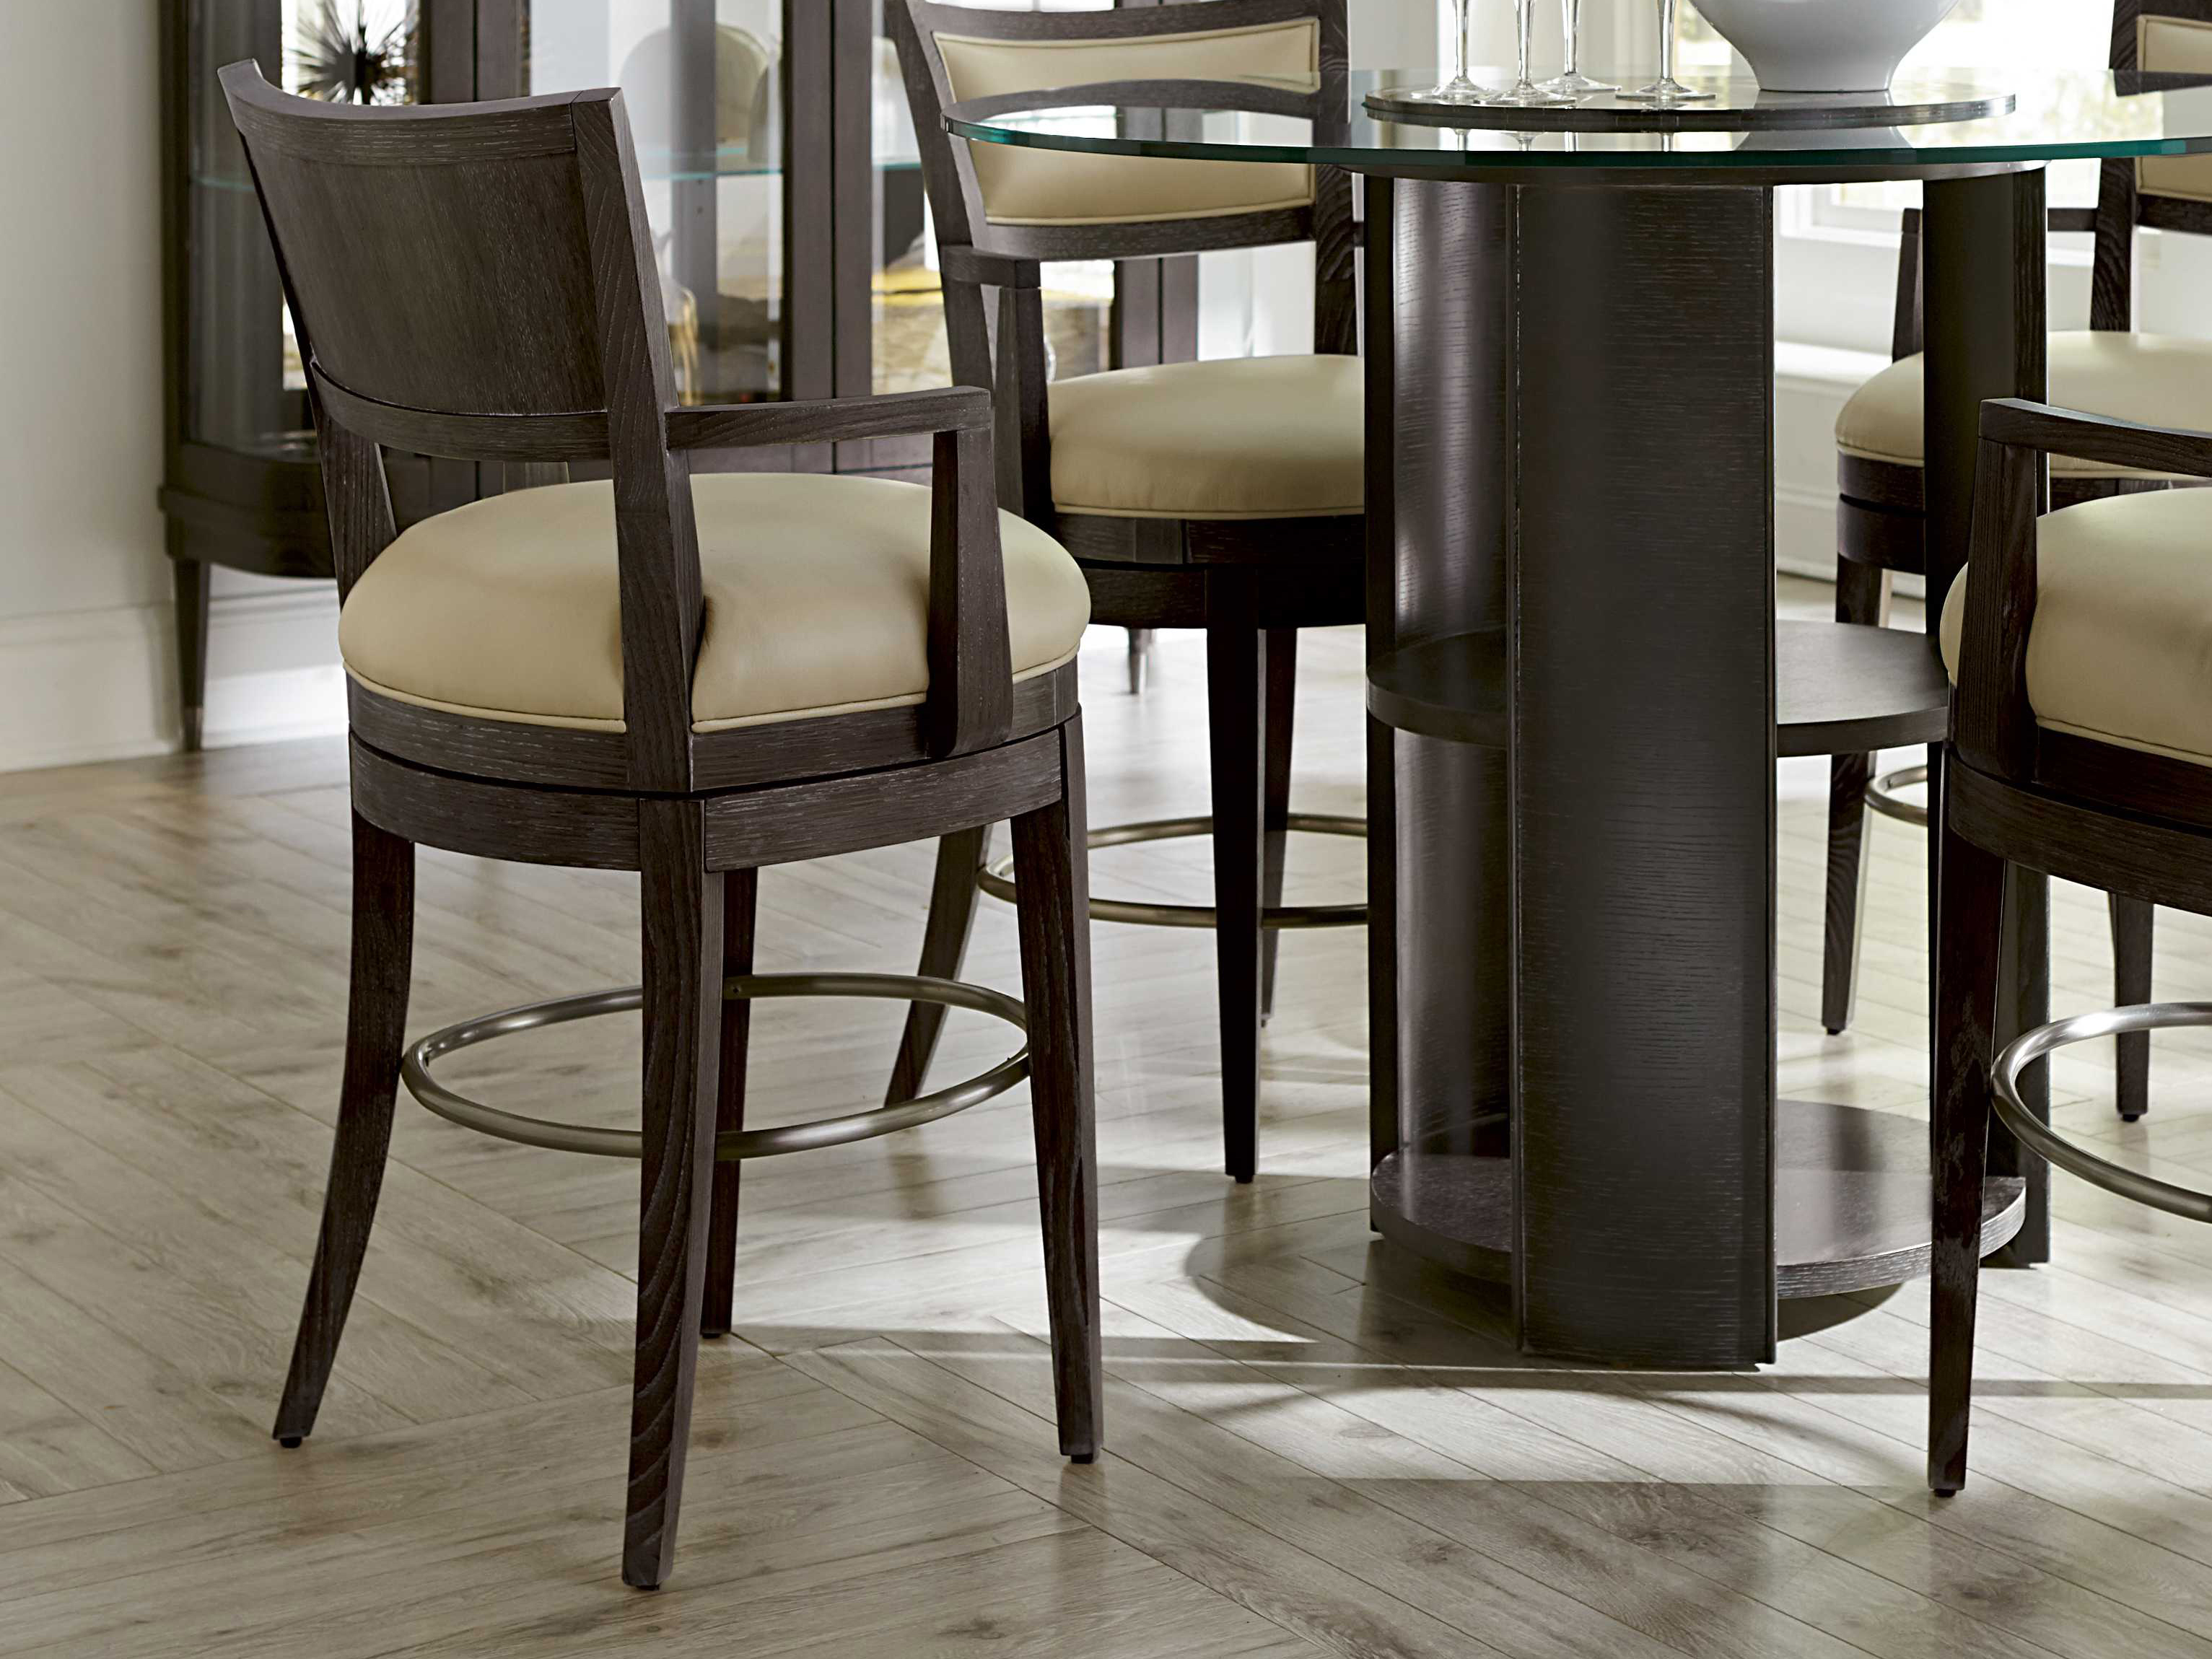 A r t furniture greenpoint oval dining table in coffee bean - A R T Furniture Greenpoint Coffee Bean Counter Arm Stool